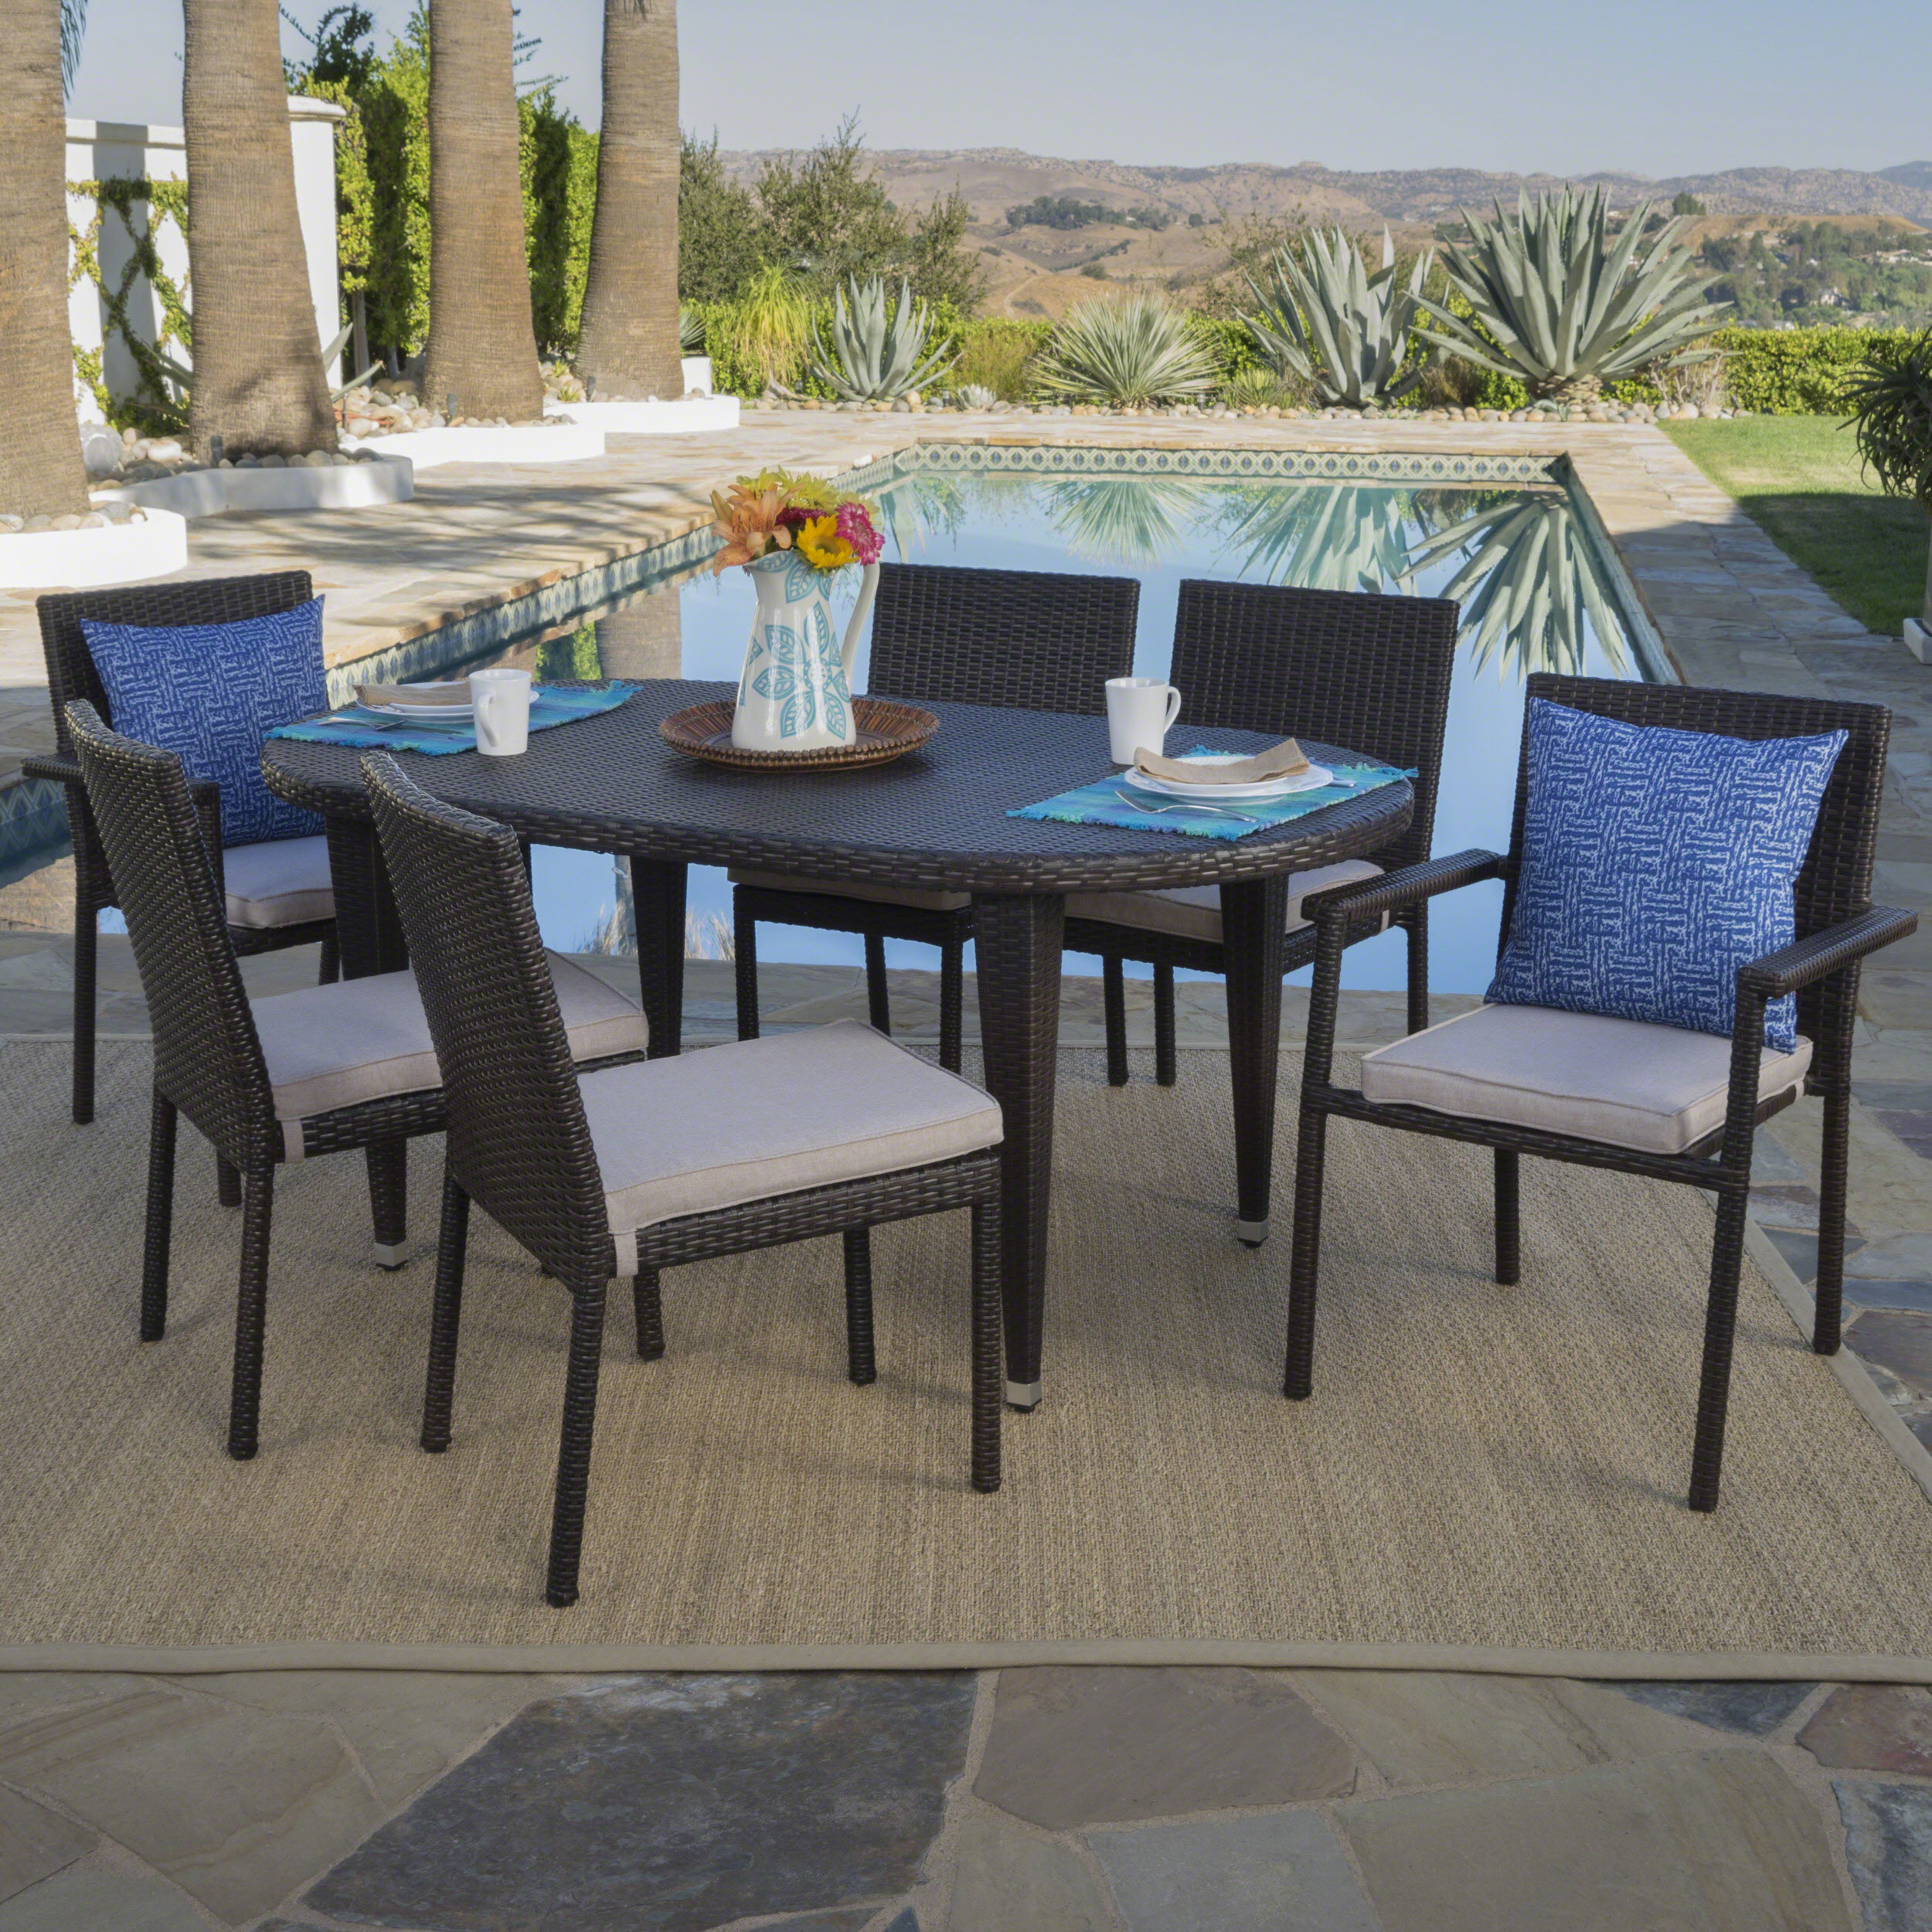 Pratt Outdoor 7 Piece Wicker Oval Dining Set with Armed and Armless Stacking Chairs and Cushions, Multibrown, Beige